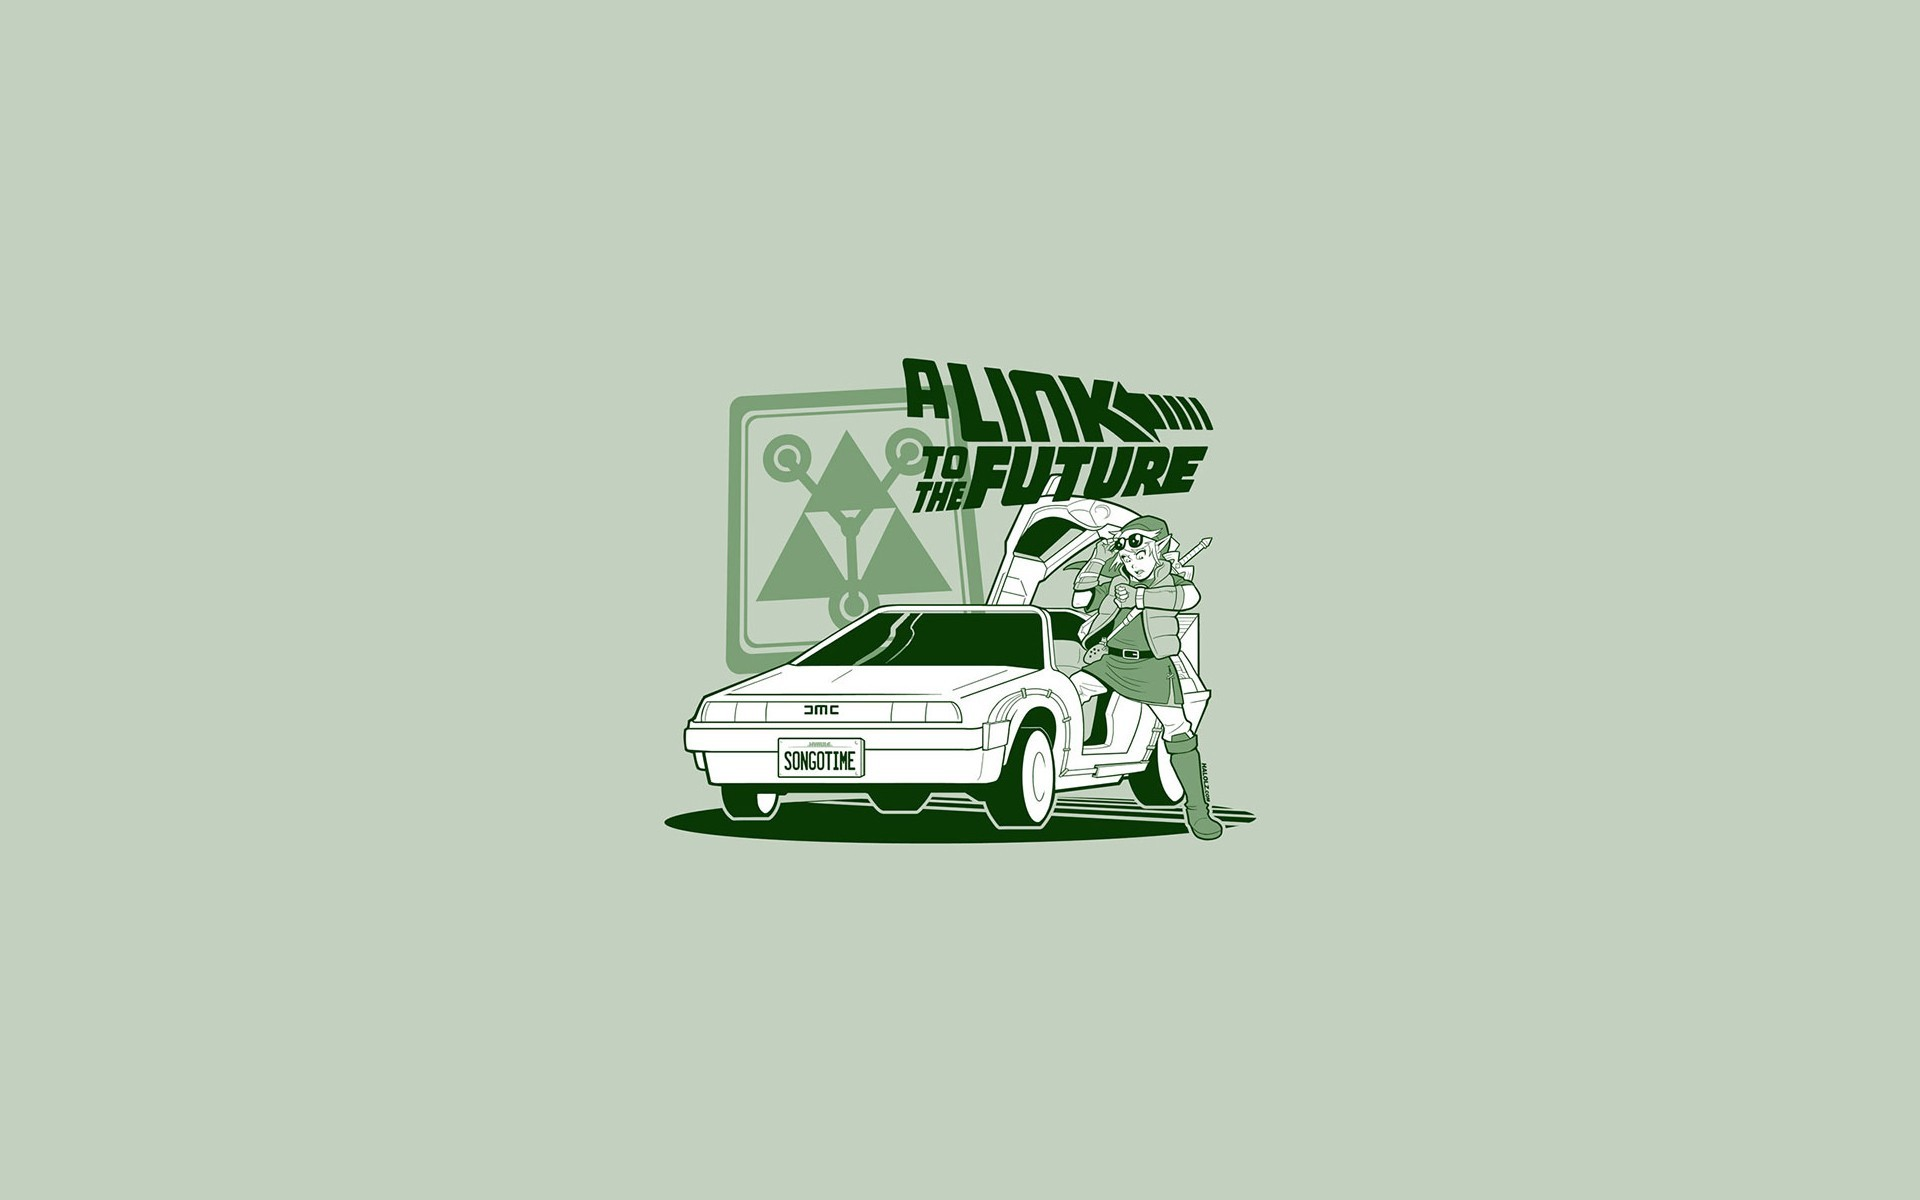 Back To The Future Cars Cartoons Comics DeLorean DMC-12 Doc Brown Funny  Link Marty McFly Spoof Legend Of Zelda